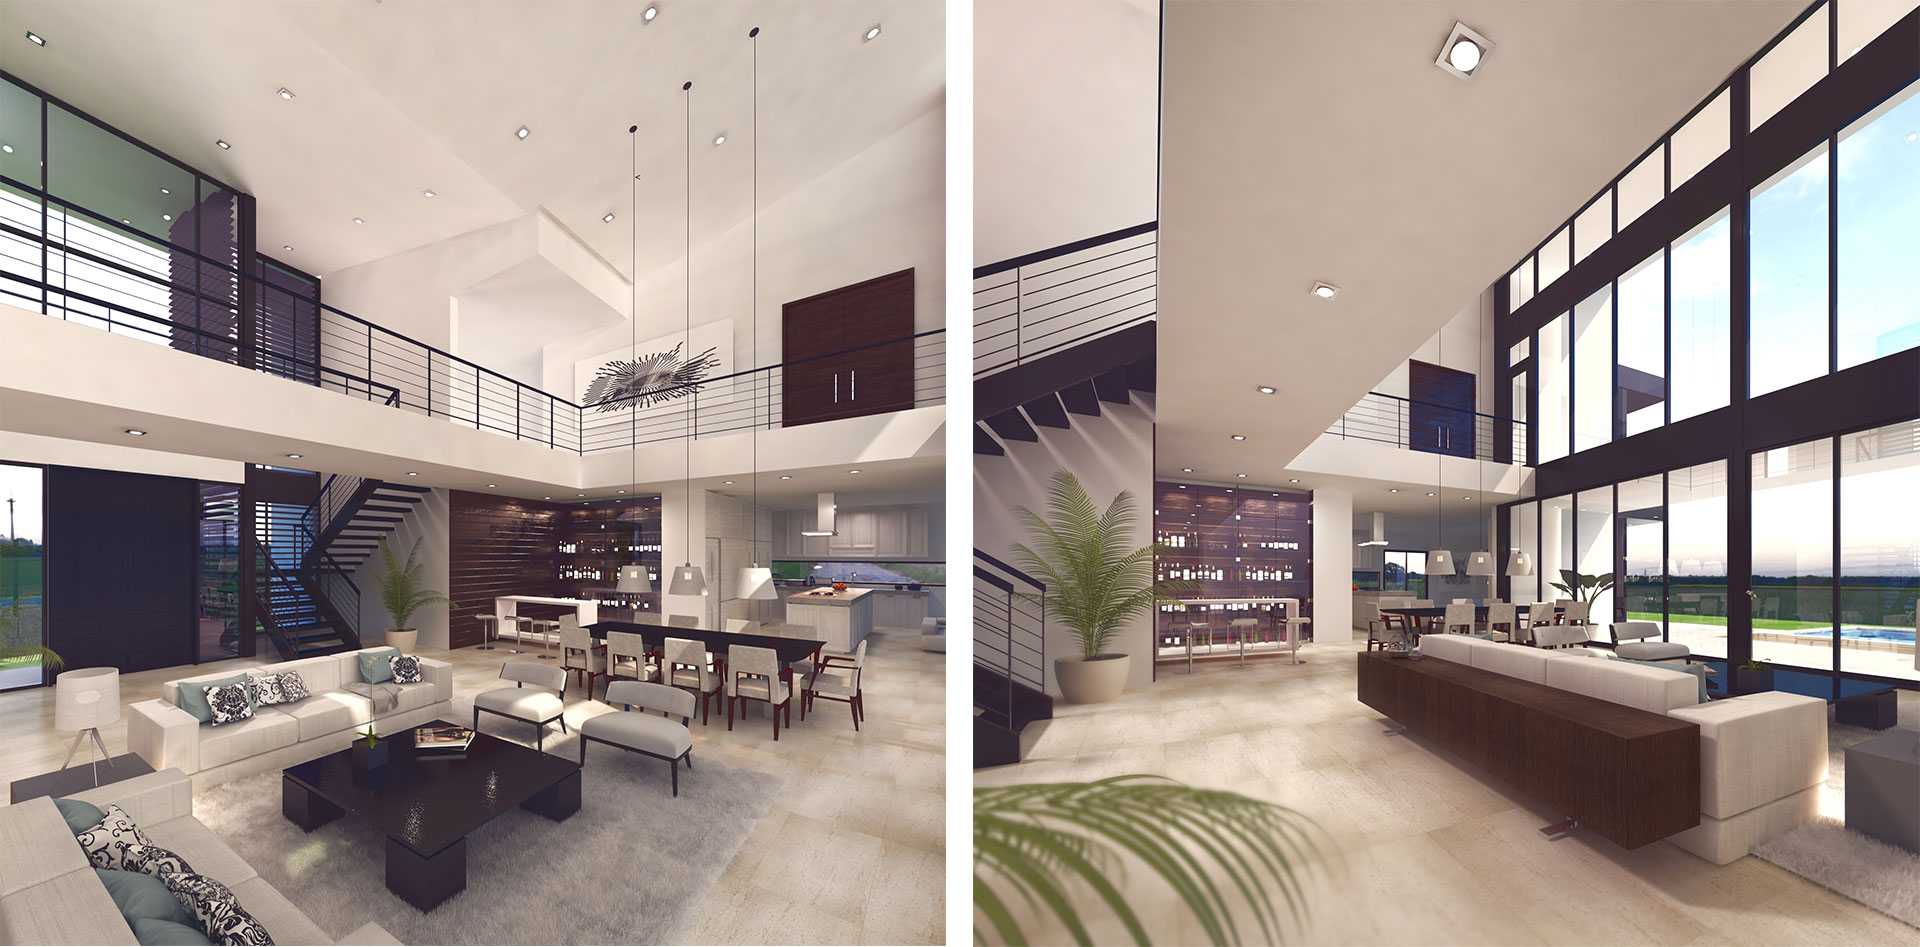 Interior View architecture project at Mola Ave, Fort Lauderdale